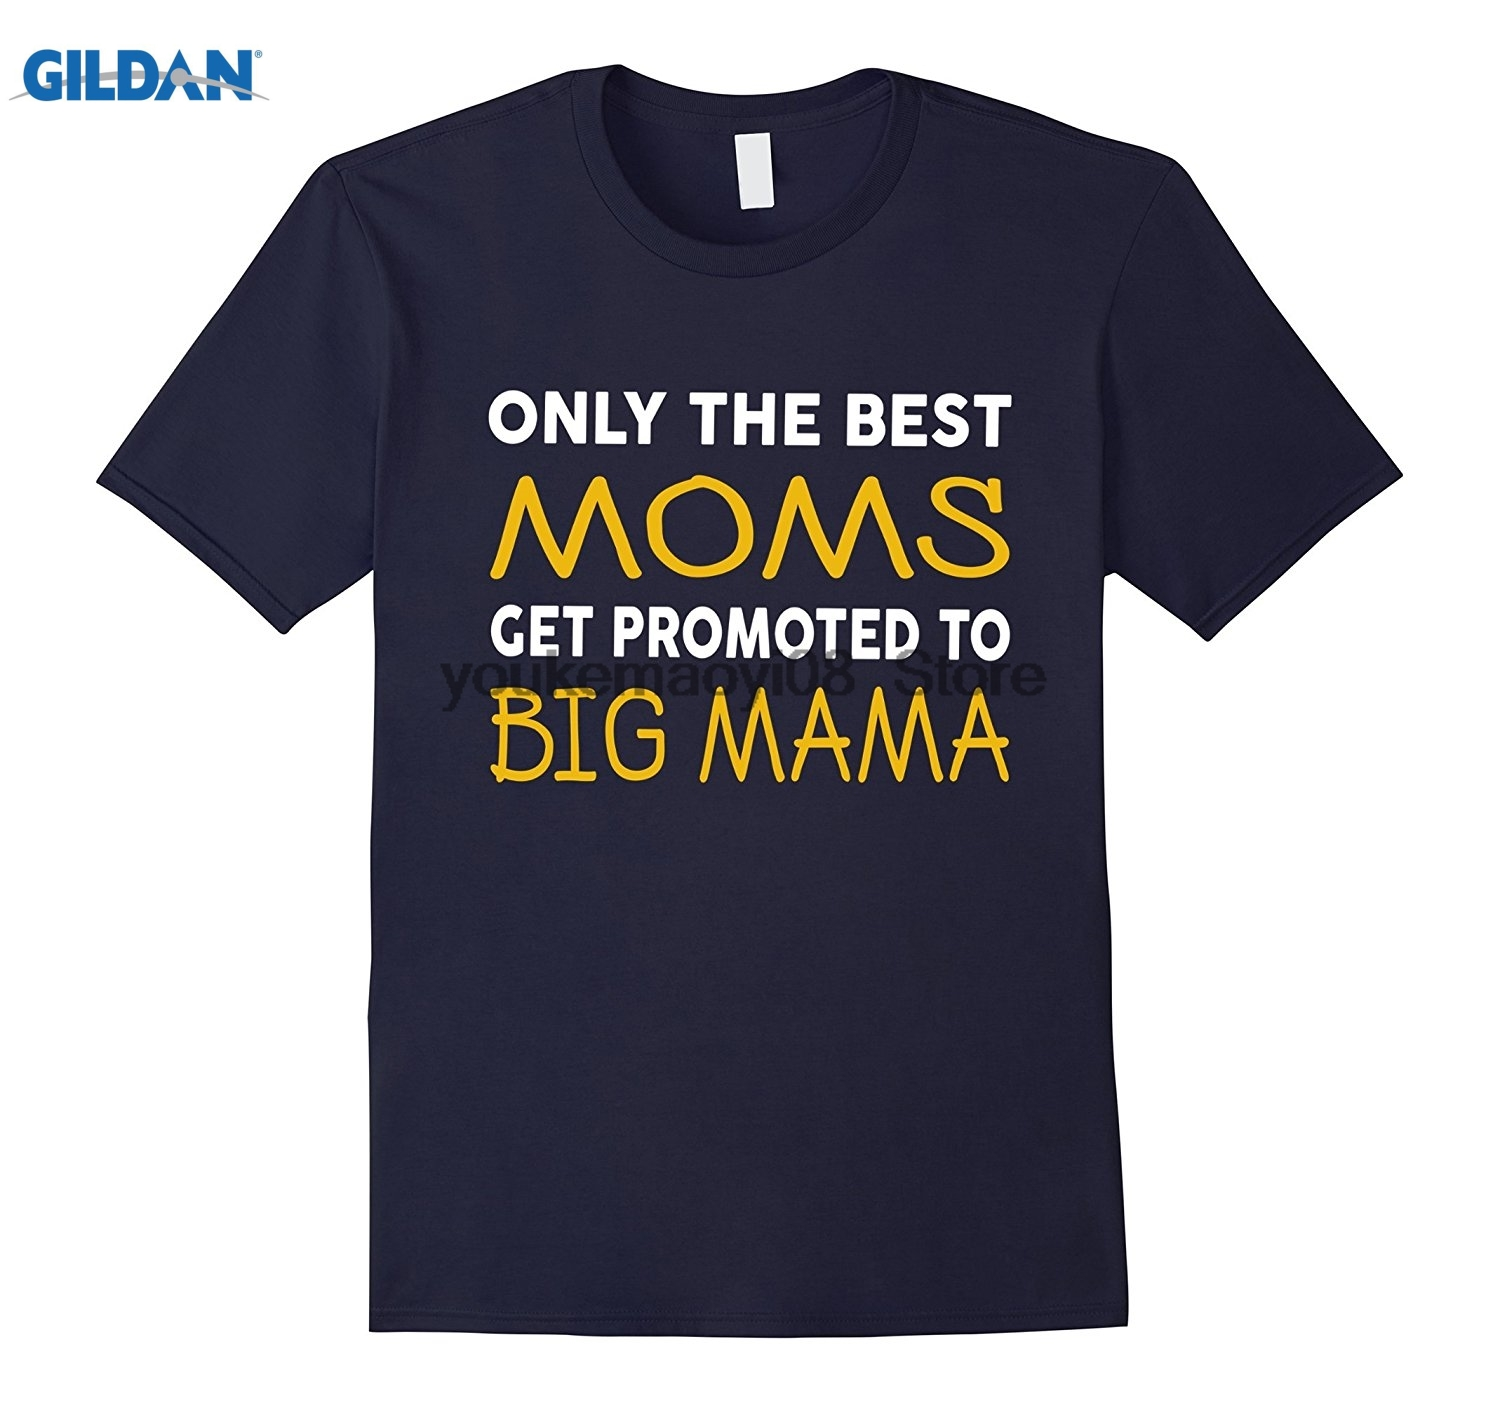 GILDAN cotton printed O-neck T-shirt Best Moms Get Promoted To Big Mama Grandma T-Shirts